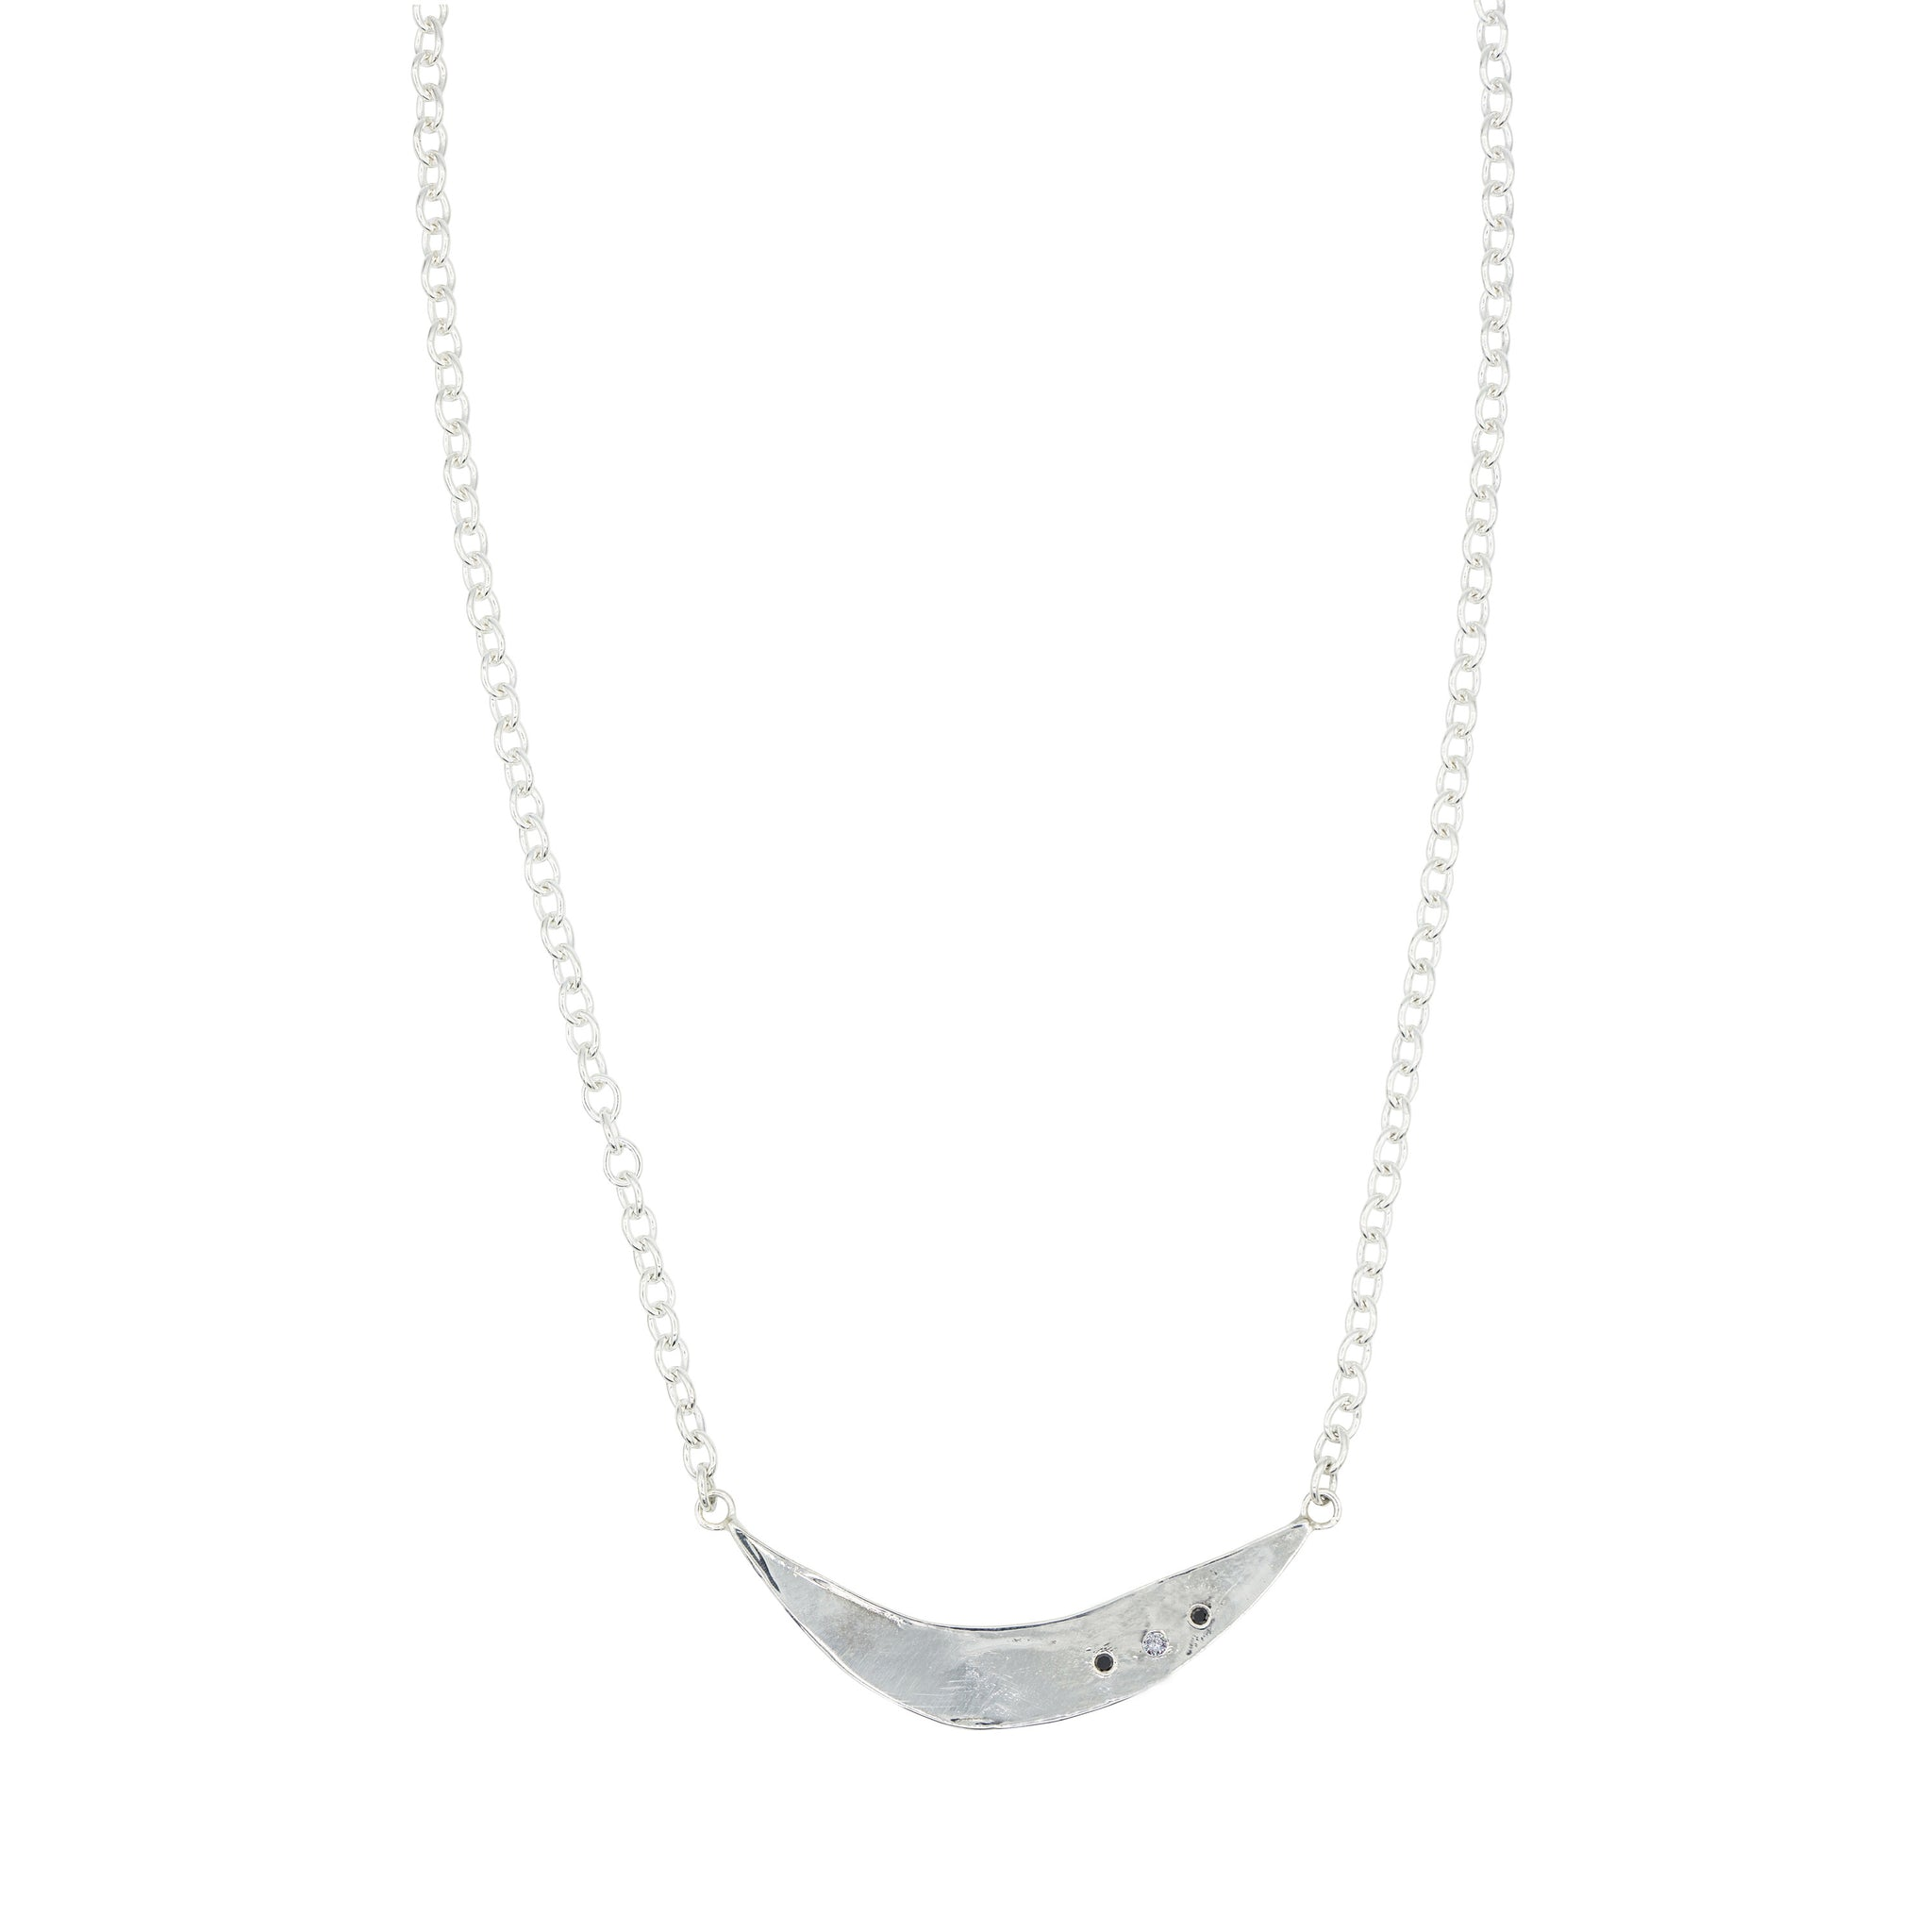 diamond black diamond moon shaped pendant chain necklace